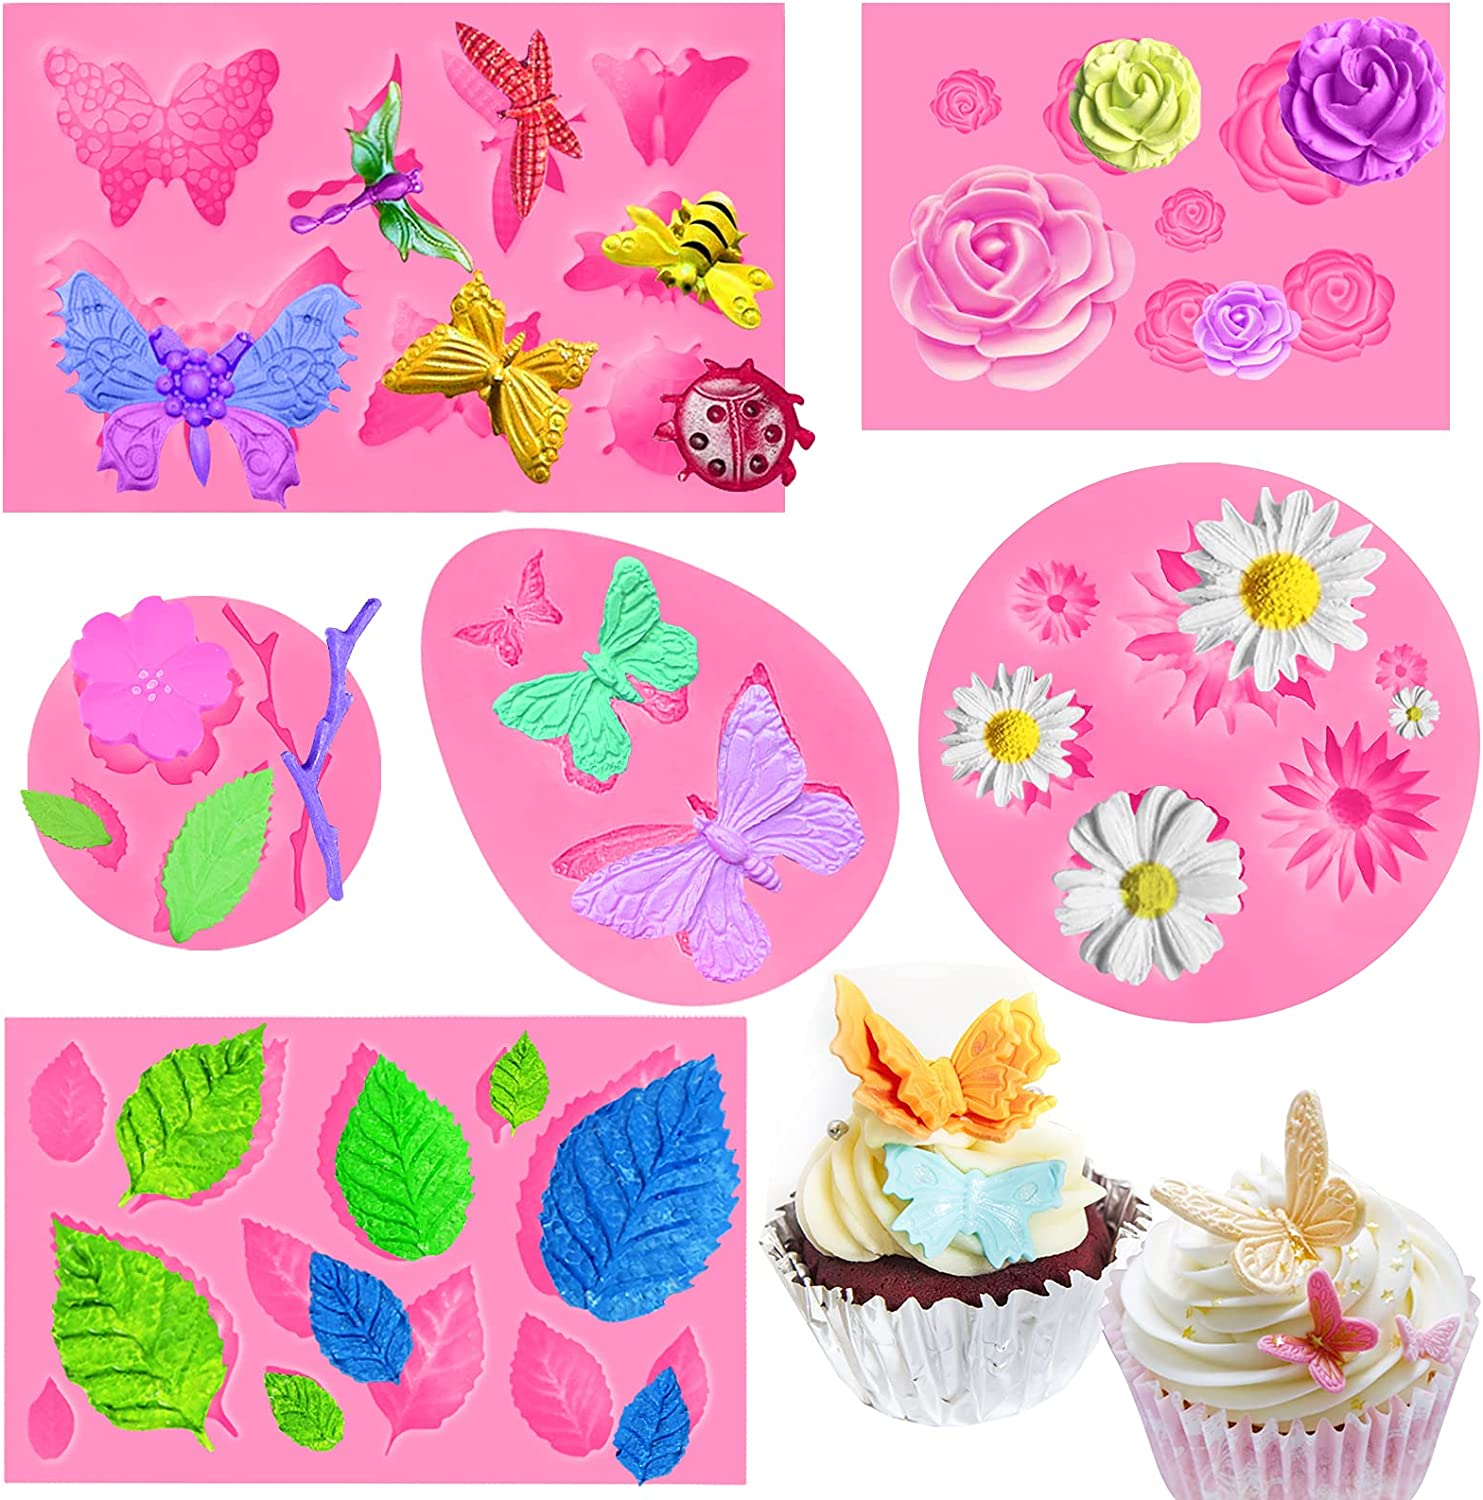 6Pack Silicon Fondant Molds for Chocolate, Mini Daisy Flower Butterfly Leaf Rose Shape Silicon Molds for Cake Pop Lollipop Cupcake Topper Decor, Polymer Clay